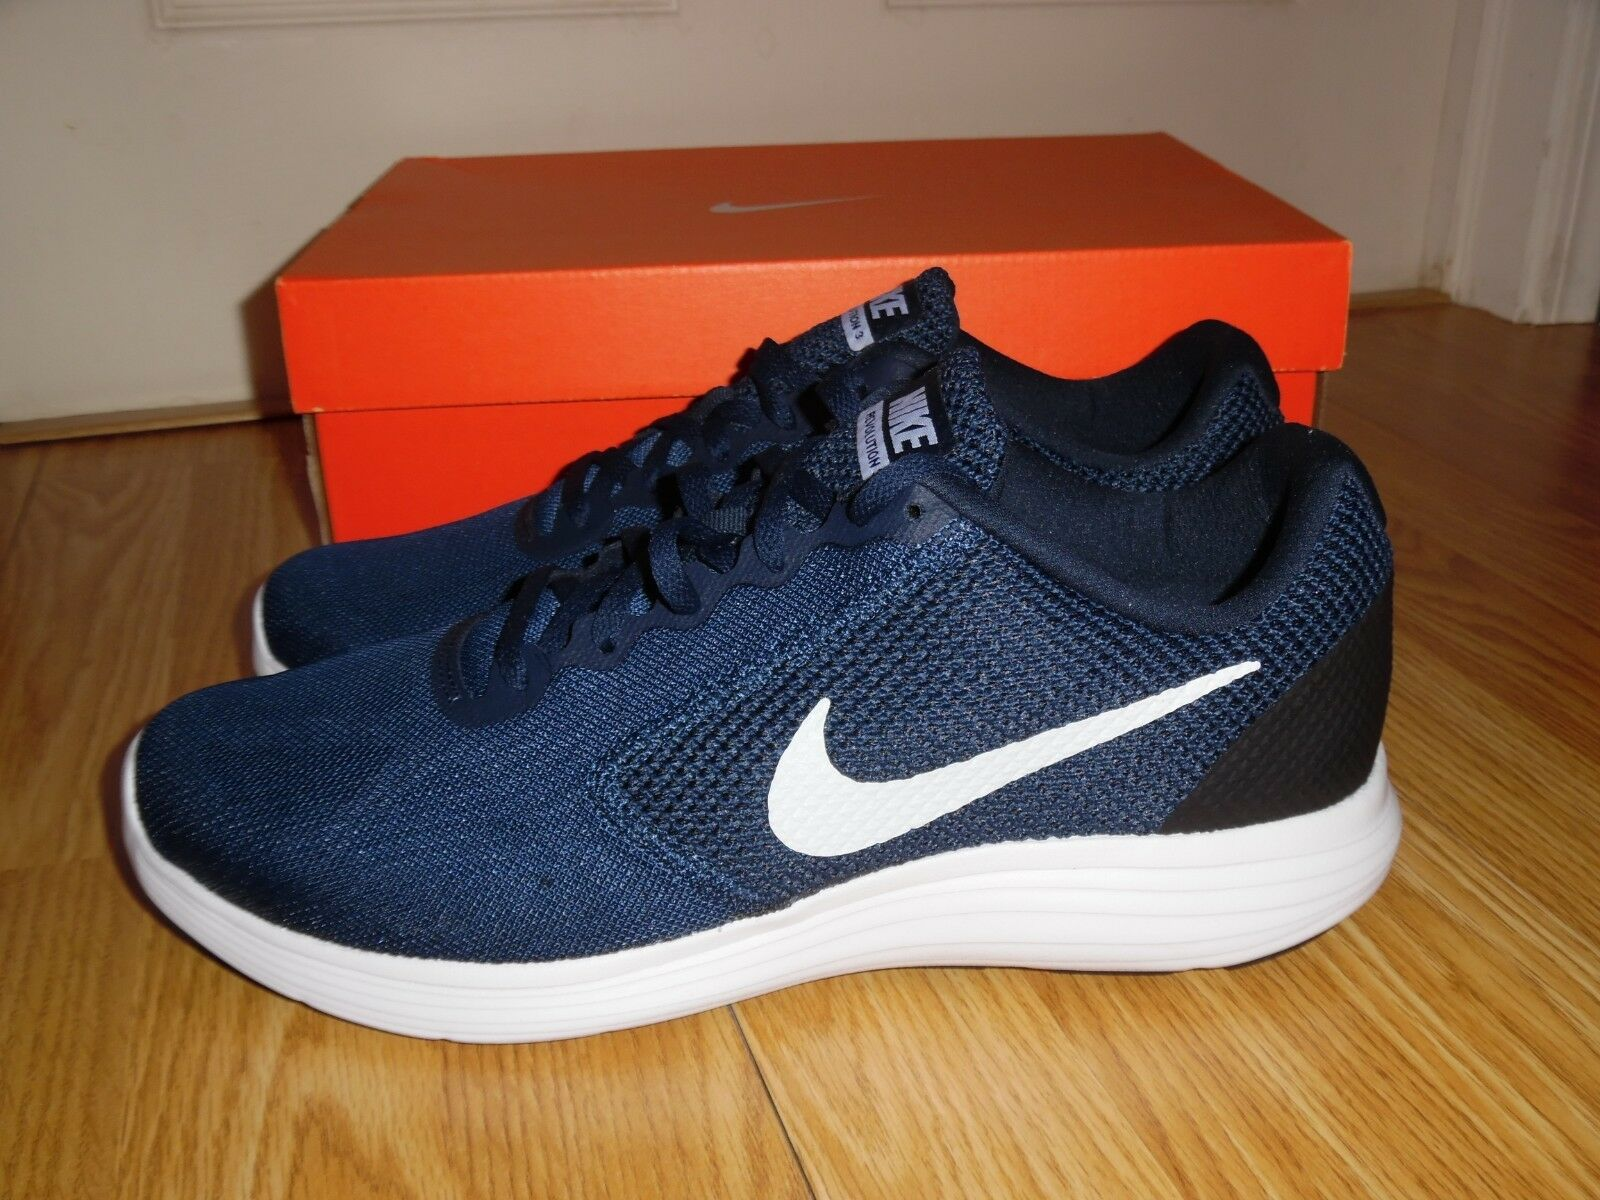 4ad2a929ab96 Nike Revolution 3 Men s Running Shoe Color Midnight Navy White Size ...